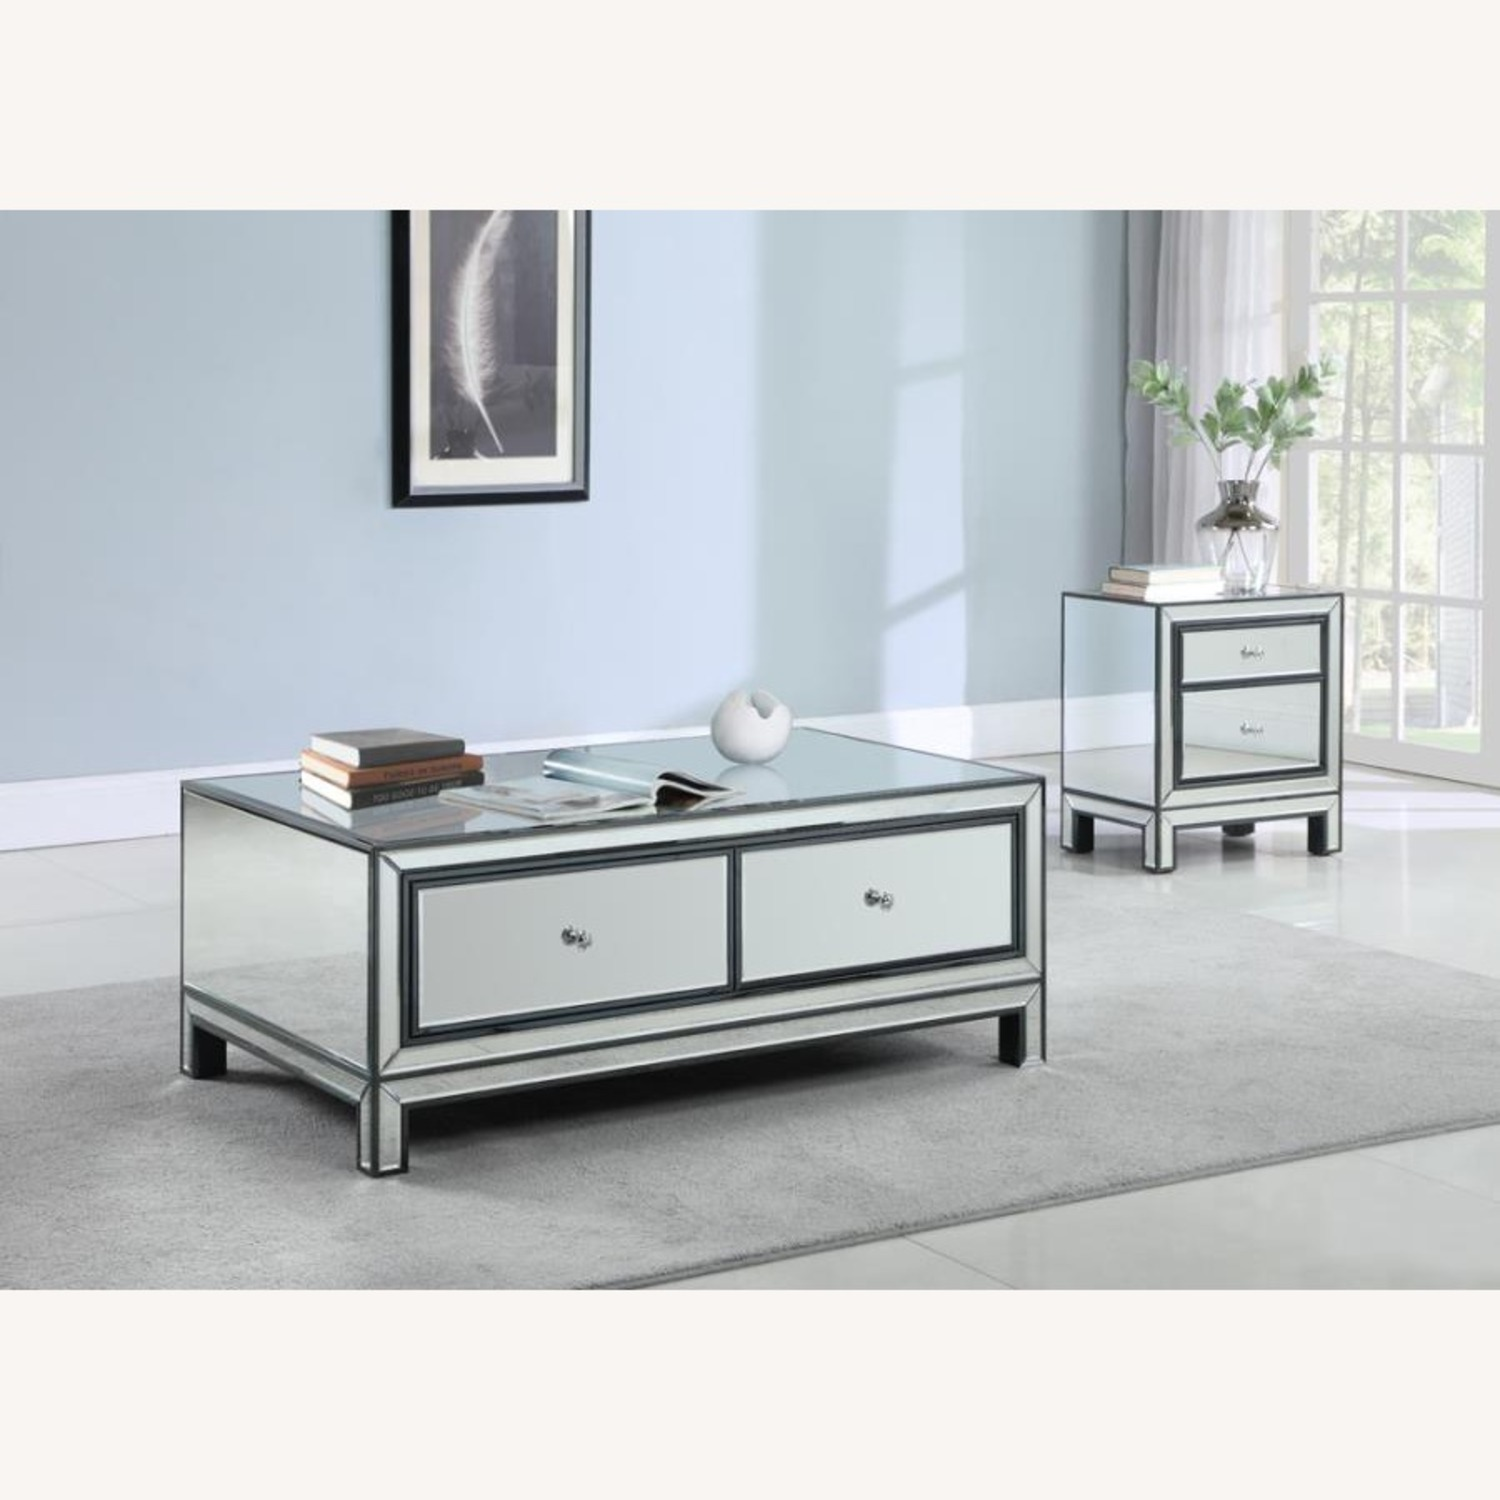 End Table W/ Mirrored Drawers In Silver Finish - image-2